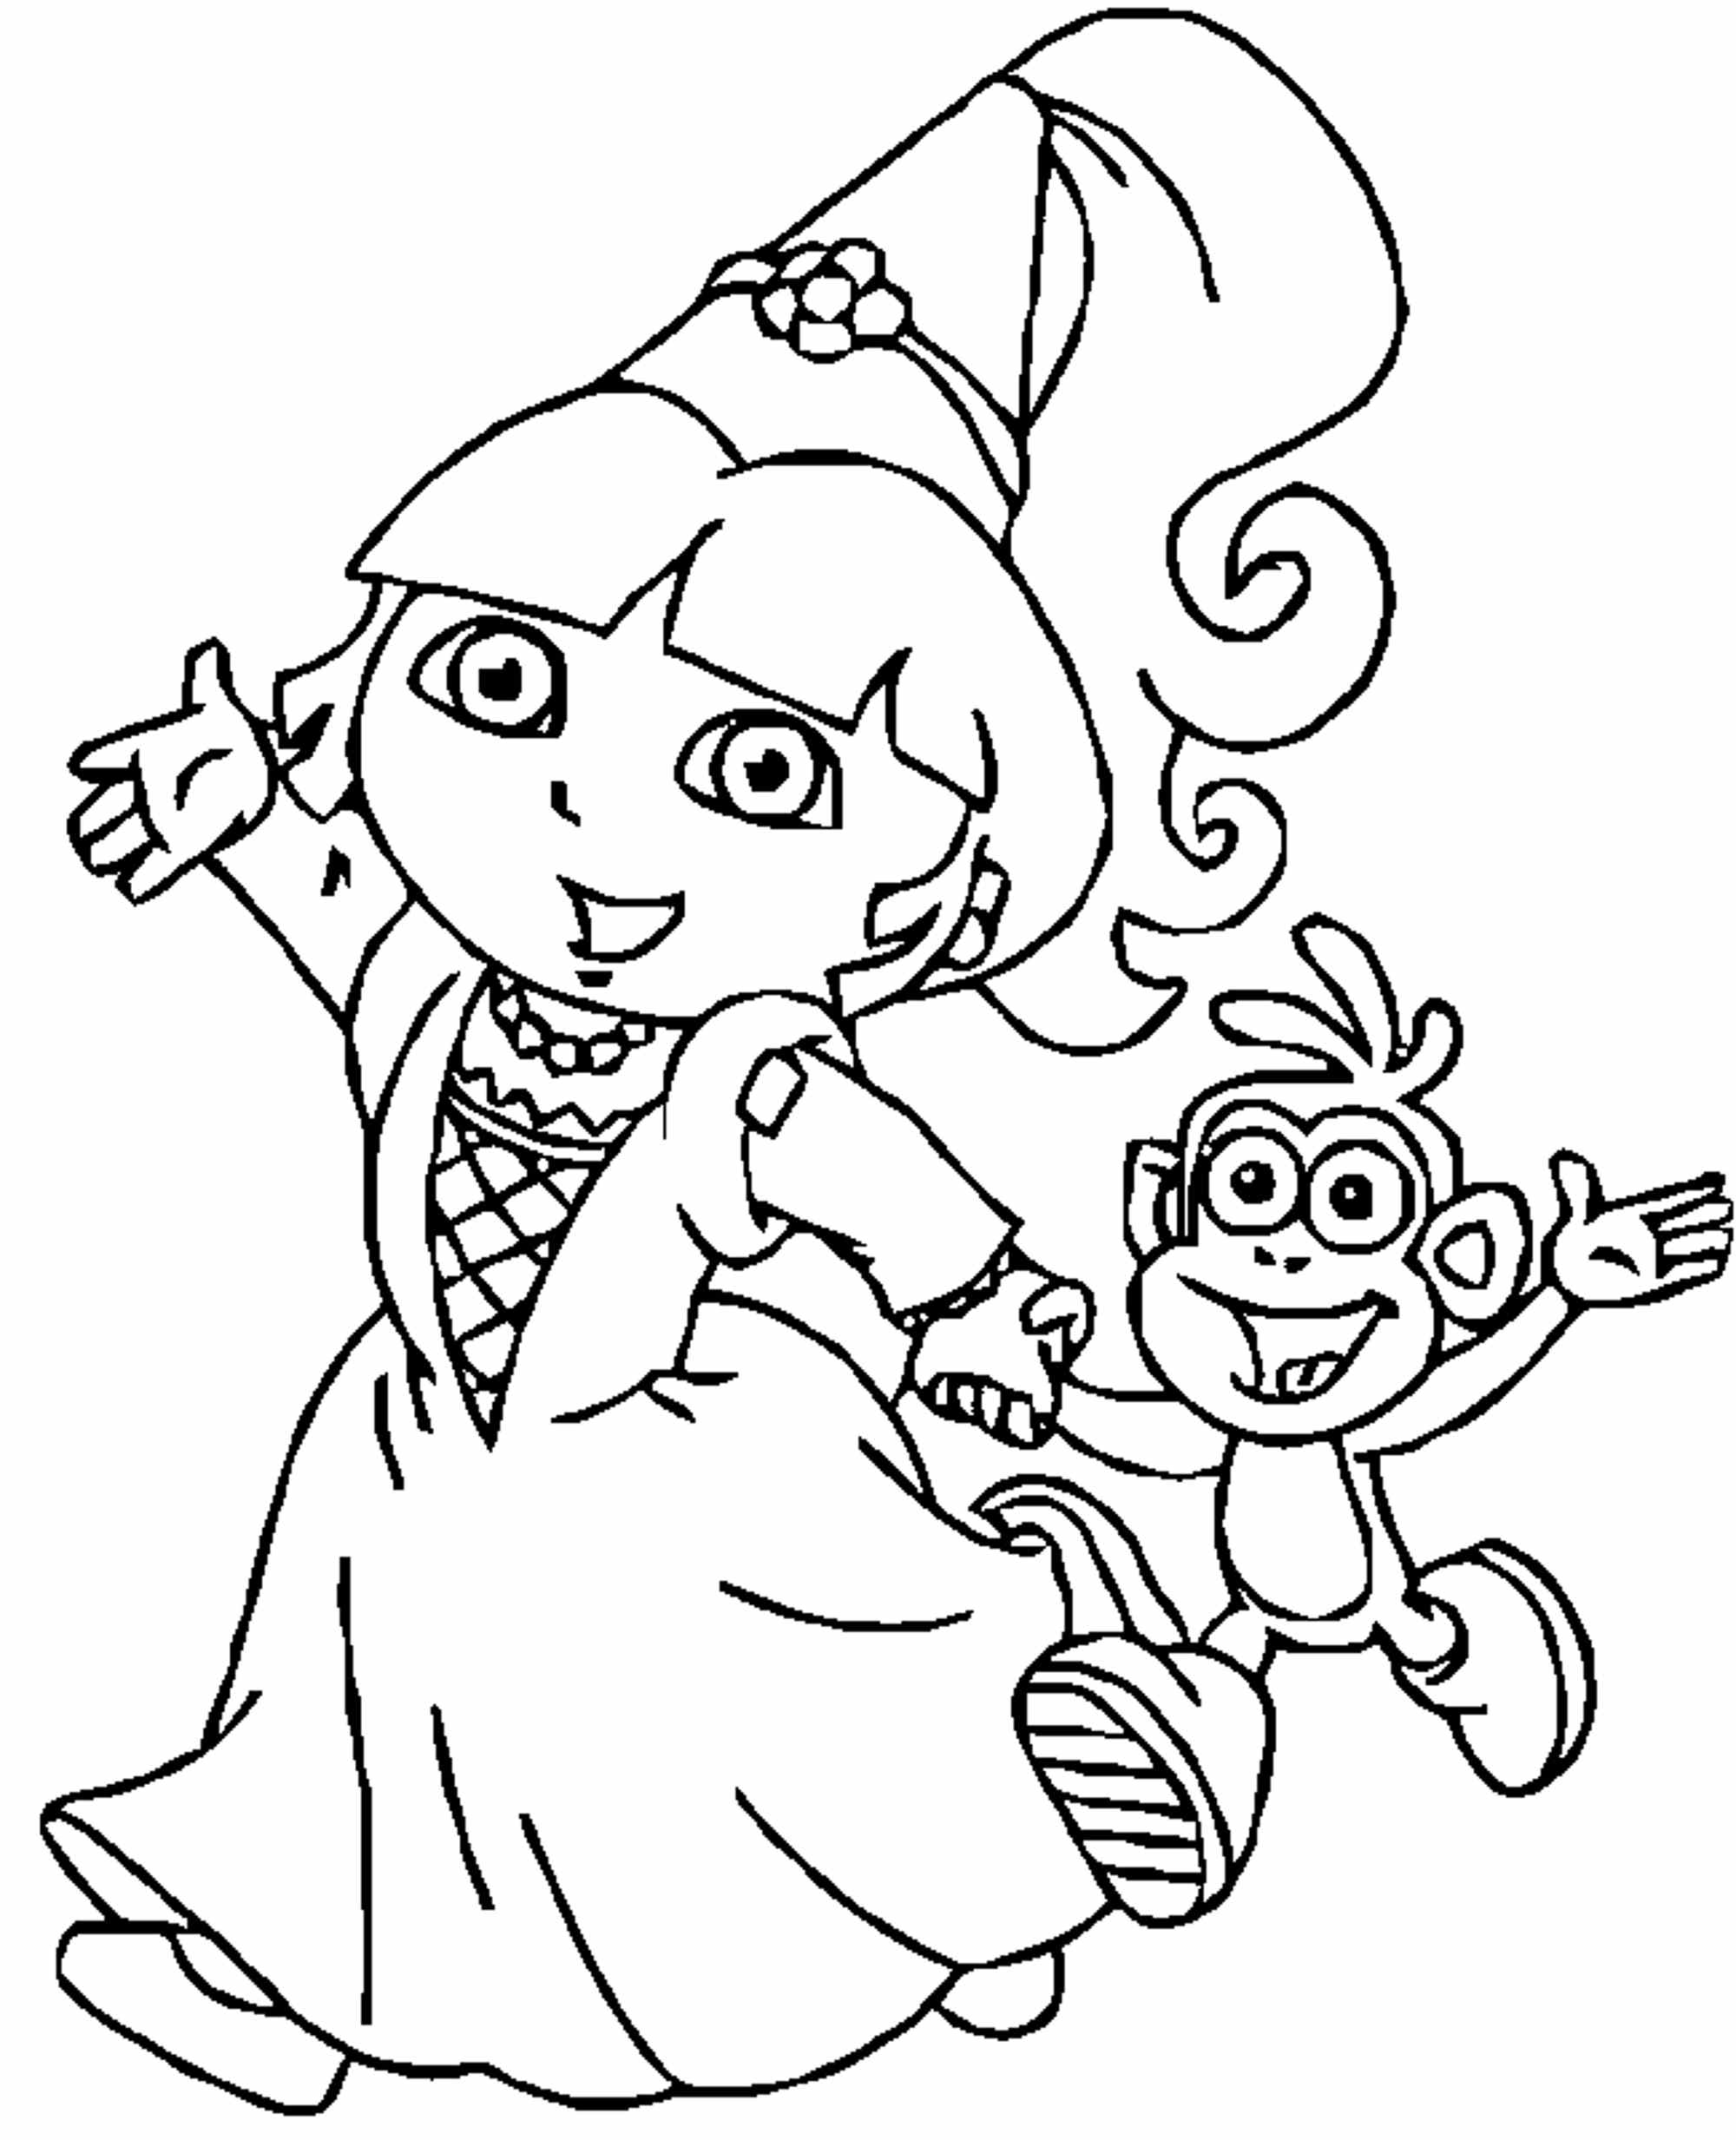 2000x2465 Dora The Explorer Coloring Pages Coloring Pages Funny Coloring